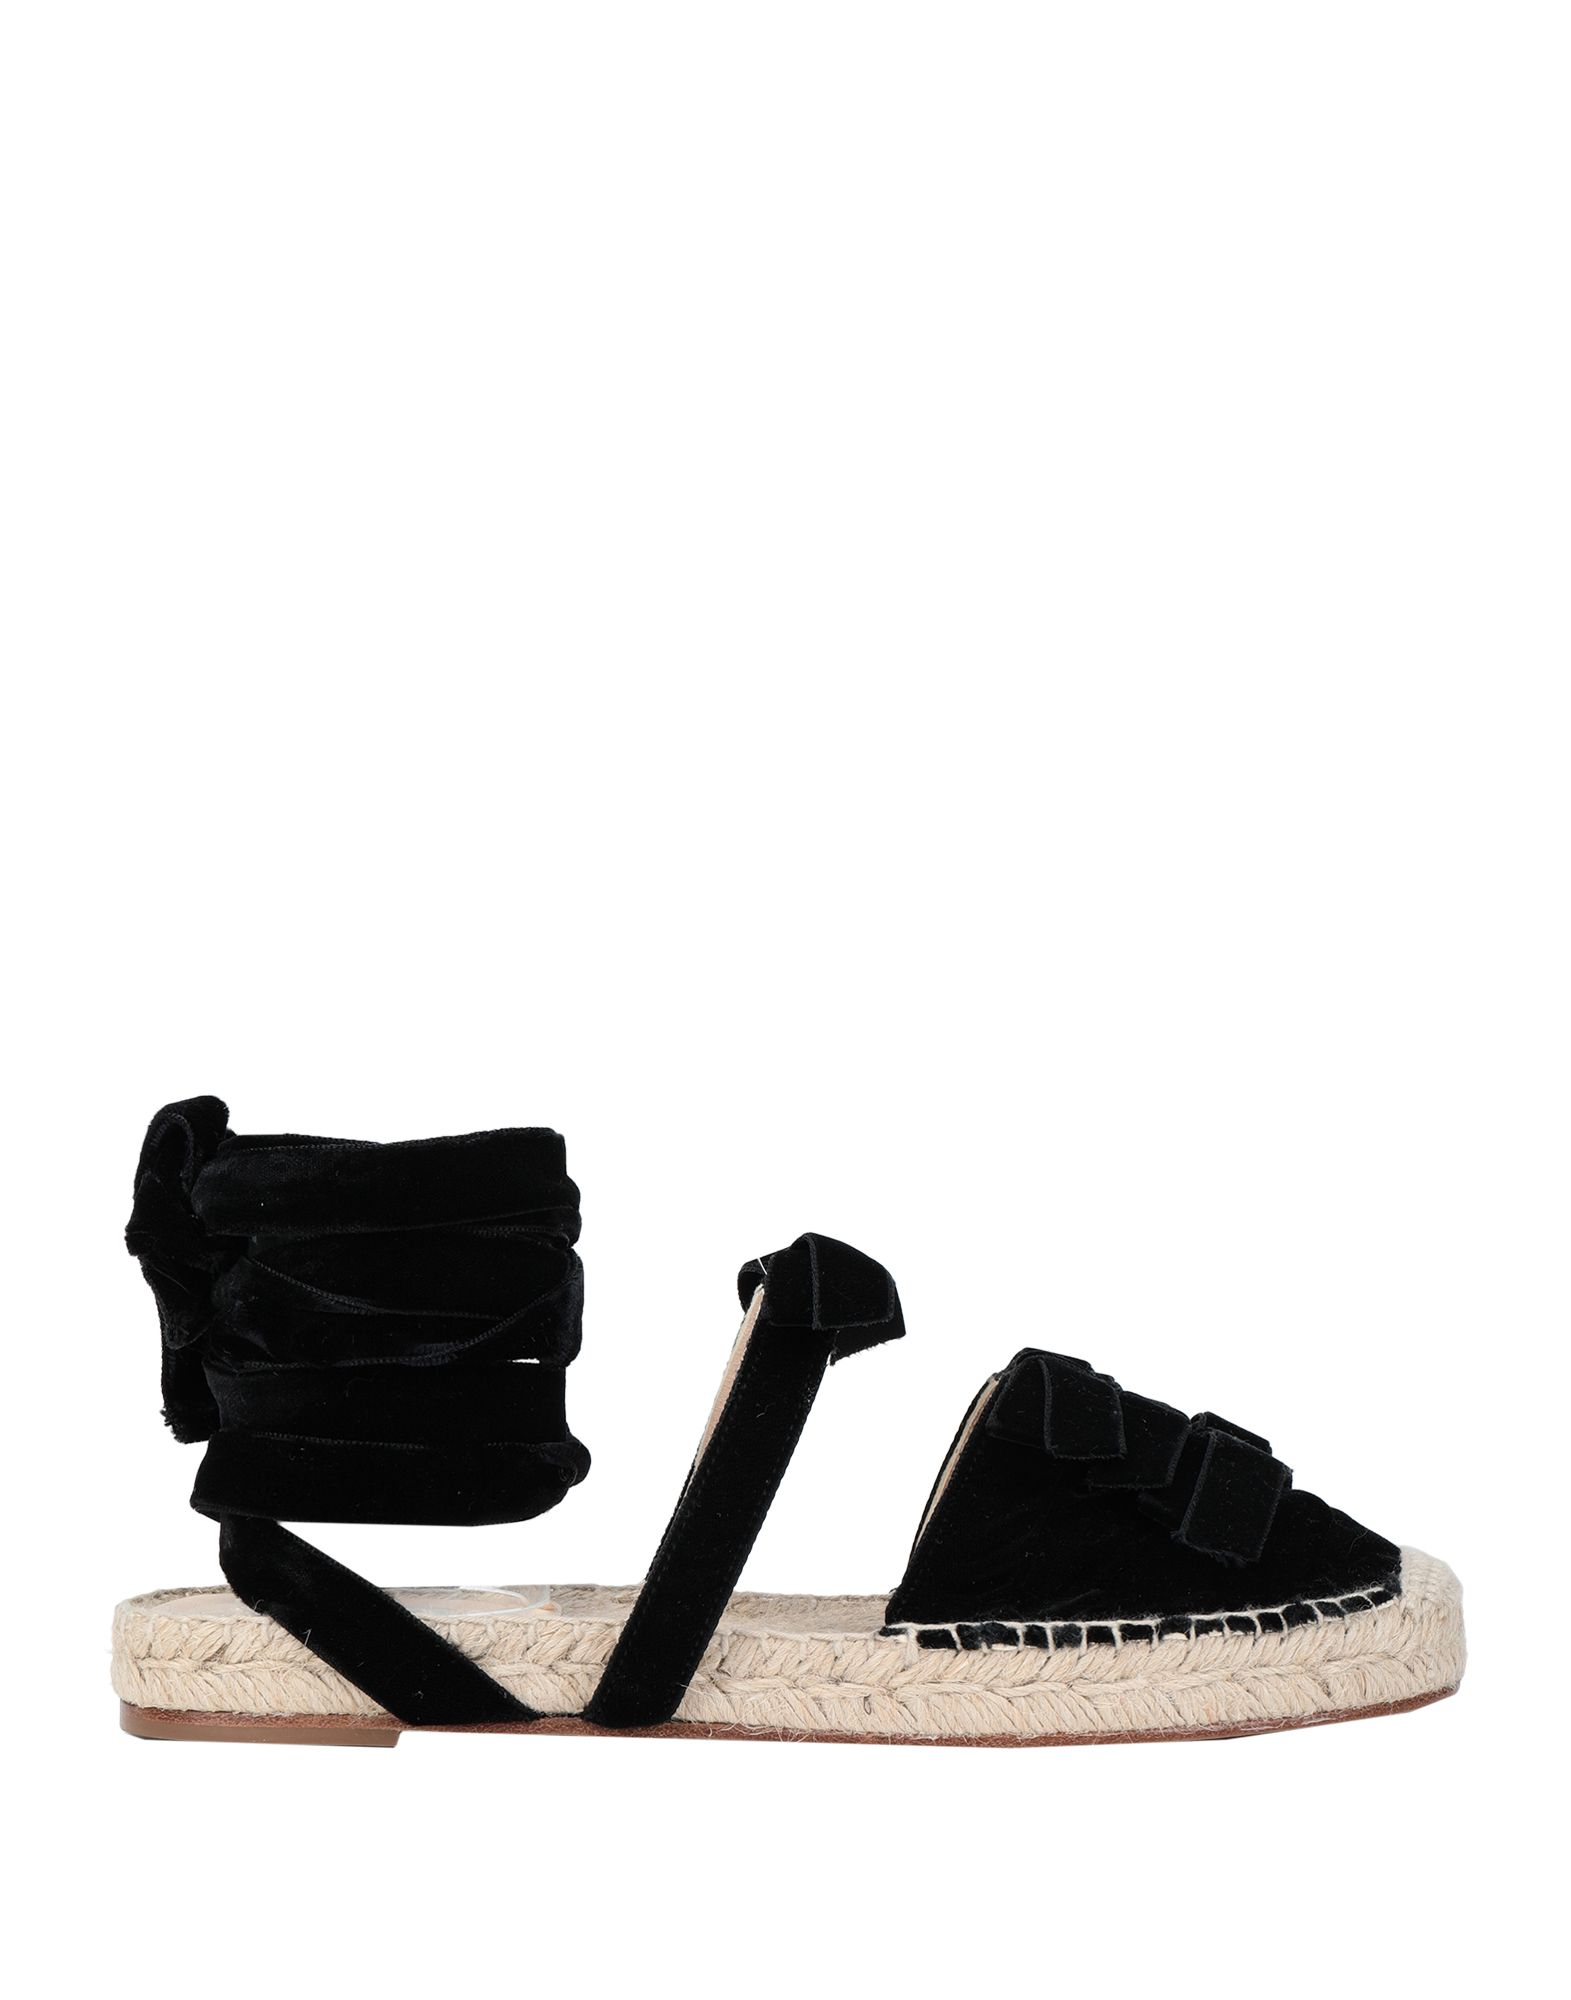 THE ATTICO Espadrilles. velvet, bow-detailed, basic solid color, wrapping straps closure, round toeline, flat, leather lining, leather sole, contains non-textile parts of animal origin. Textile fibers